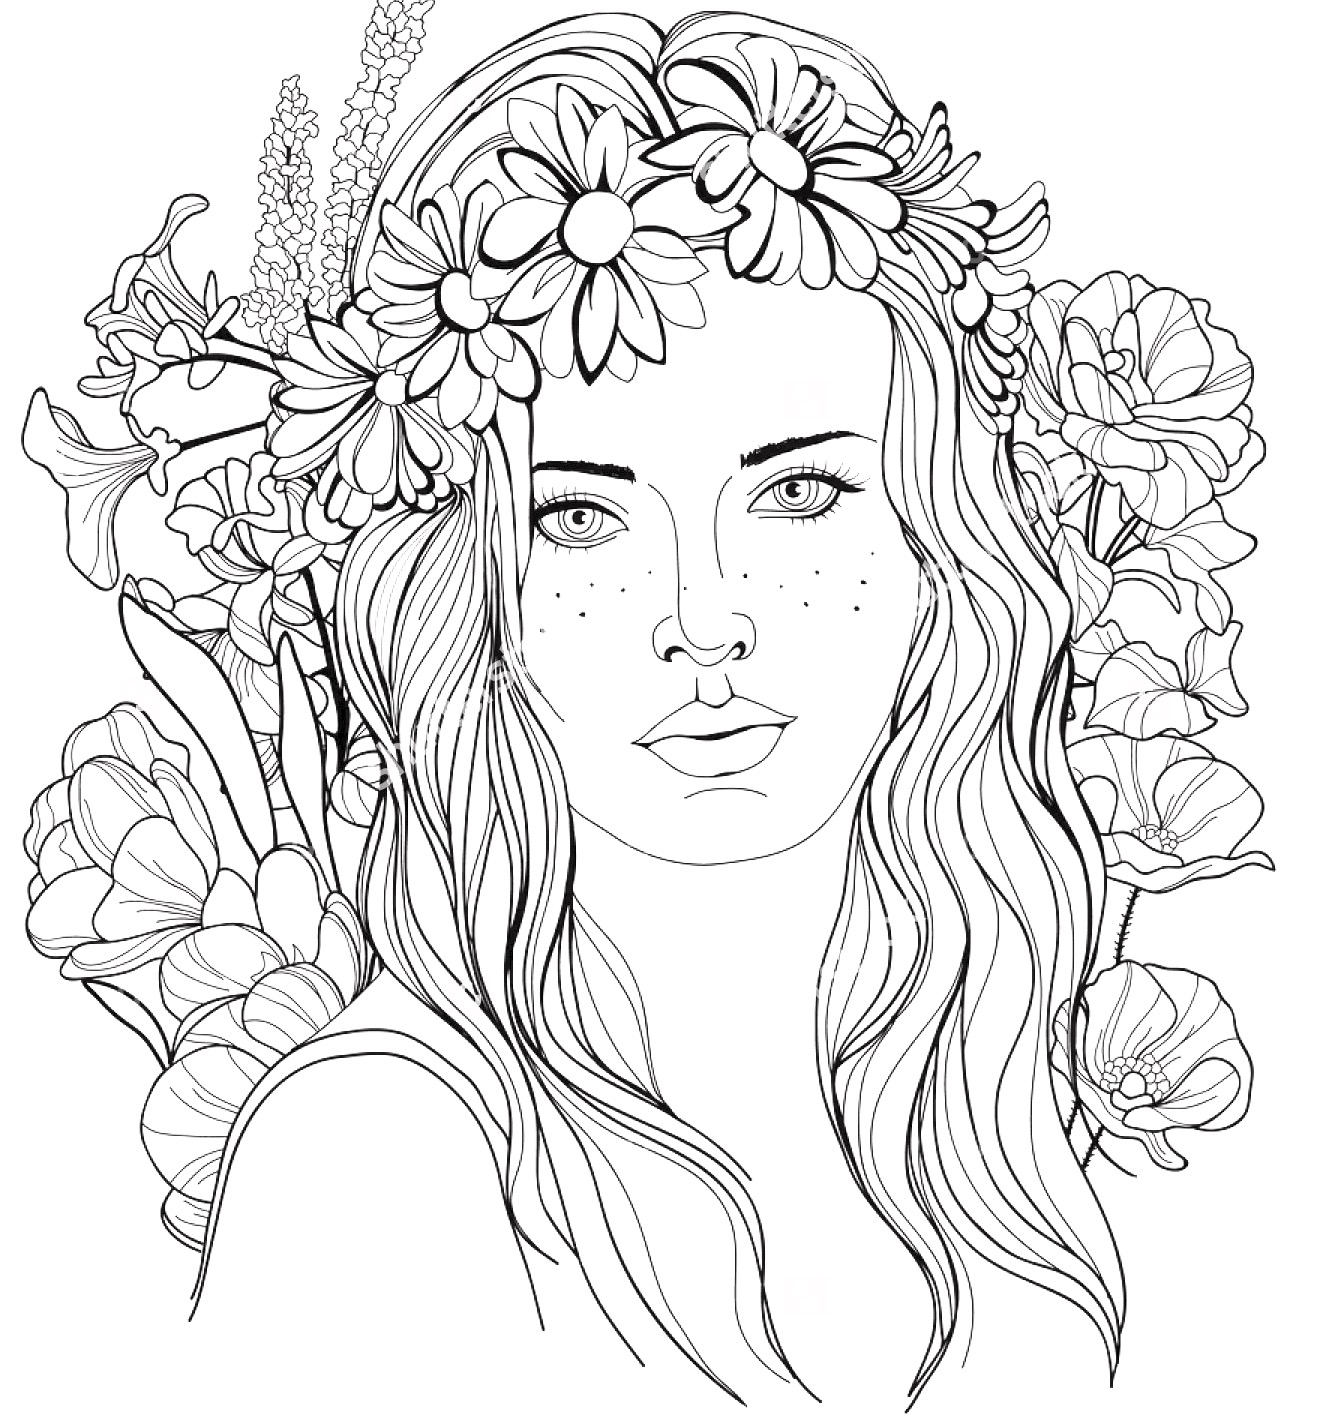 girl with flowers in her hair drawing at getdrawingscom